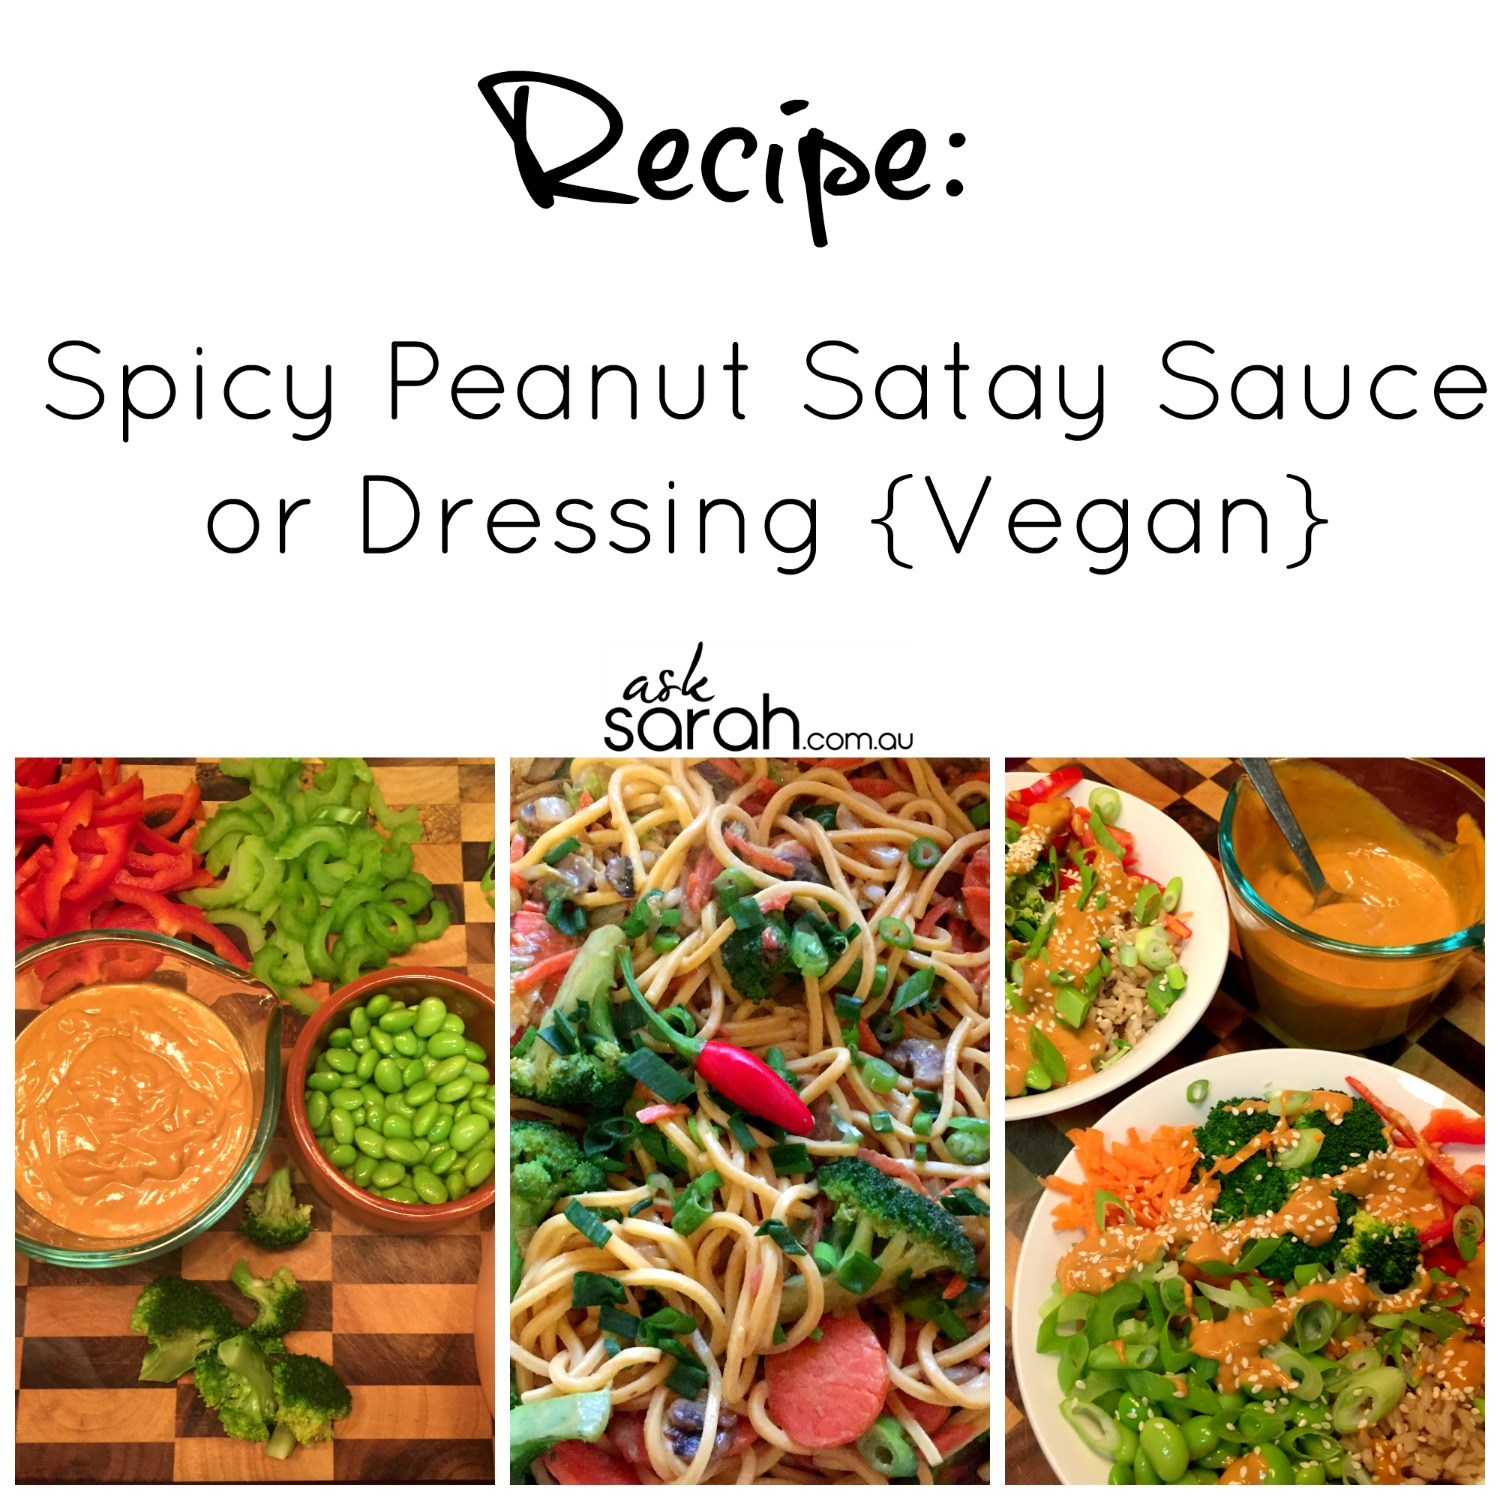 Recipe: Spicy Peanut Satay Sauce or Dressing {Vegan}